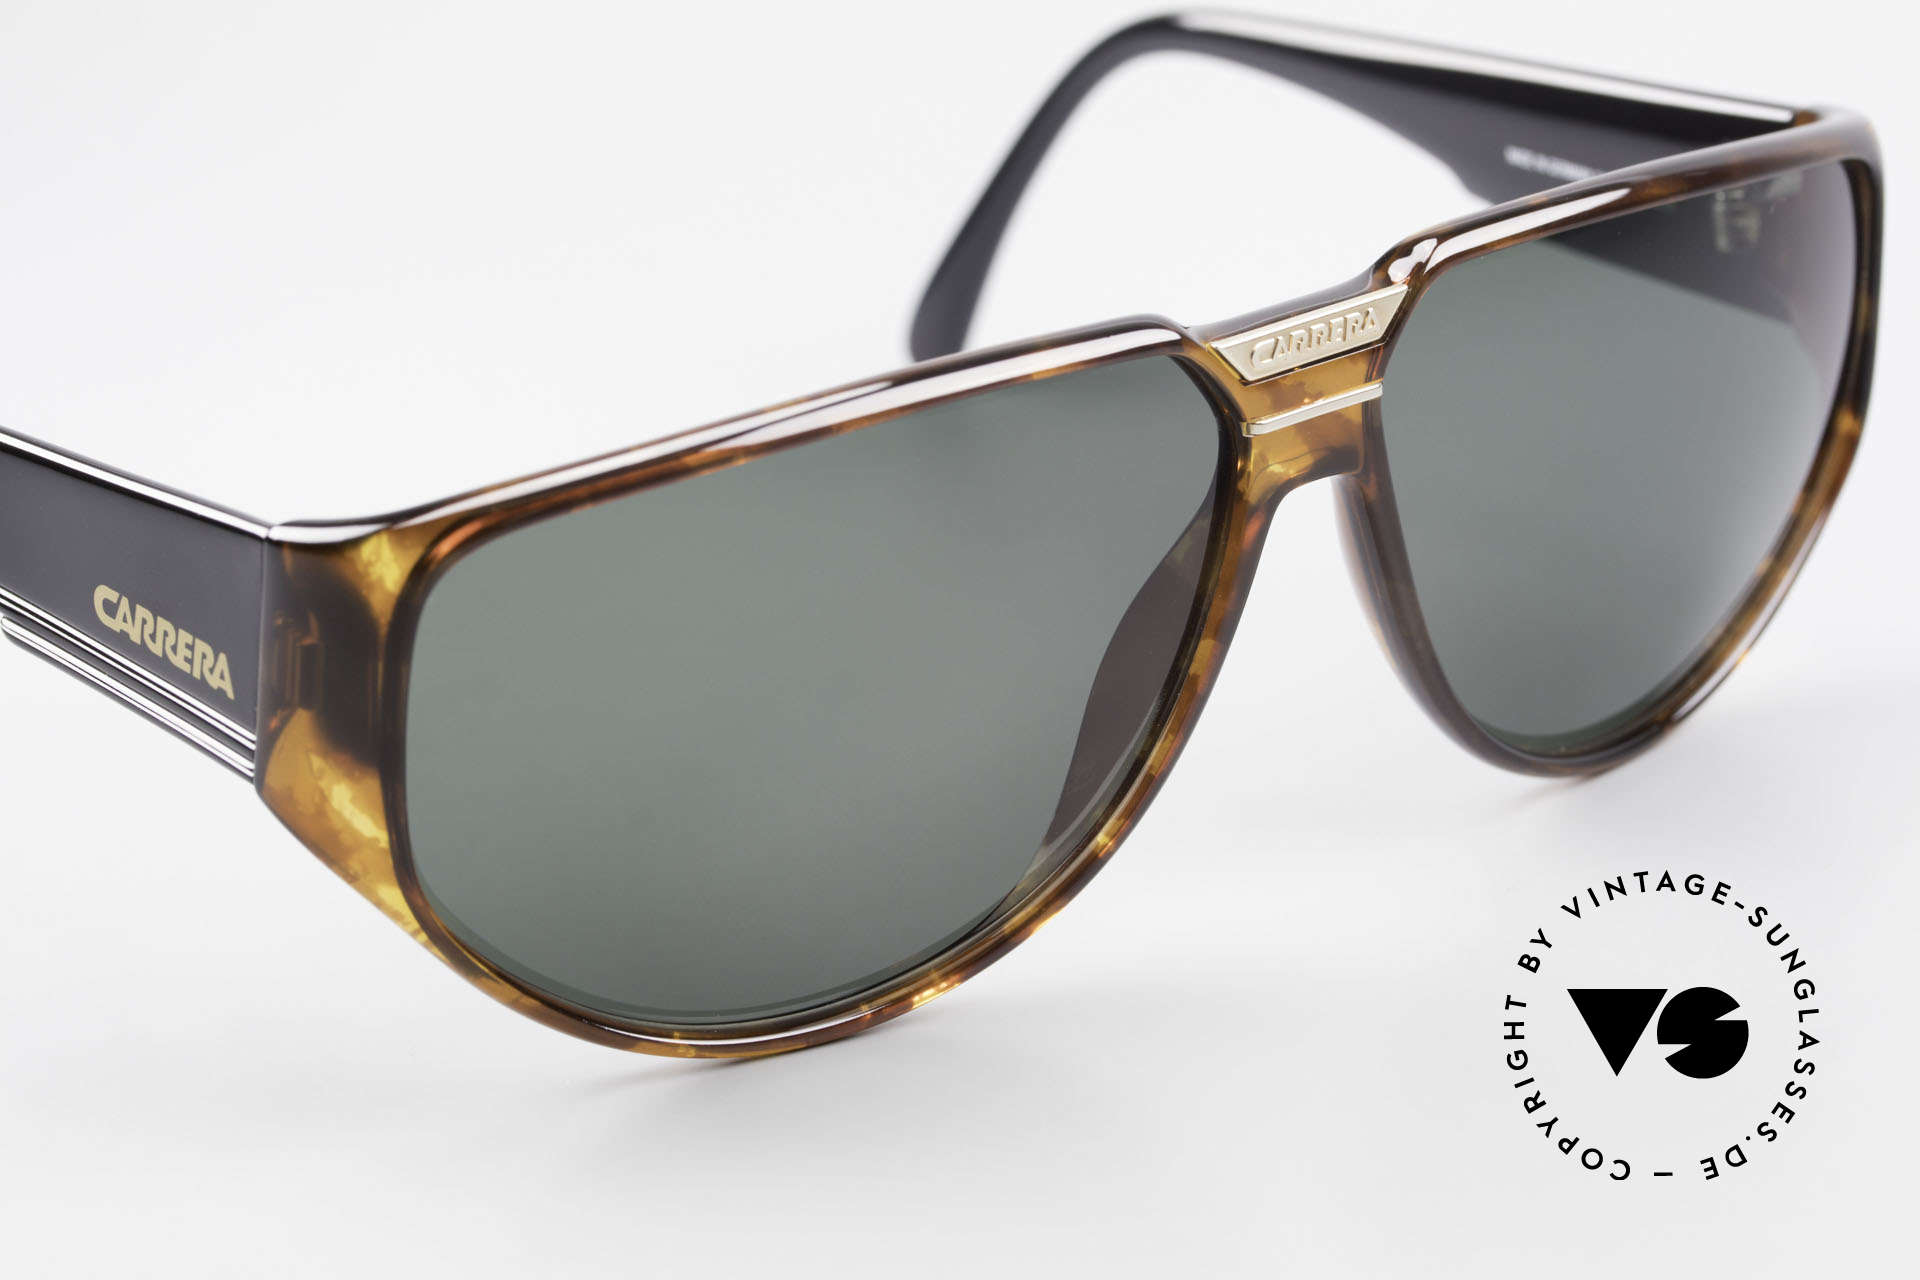 Carrera 5417 Designer 80's Sportsglasses, 30 years old unicum still shines like just produced, Made for Men